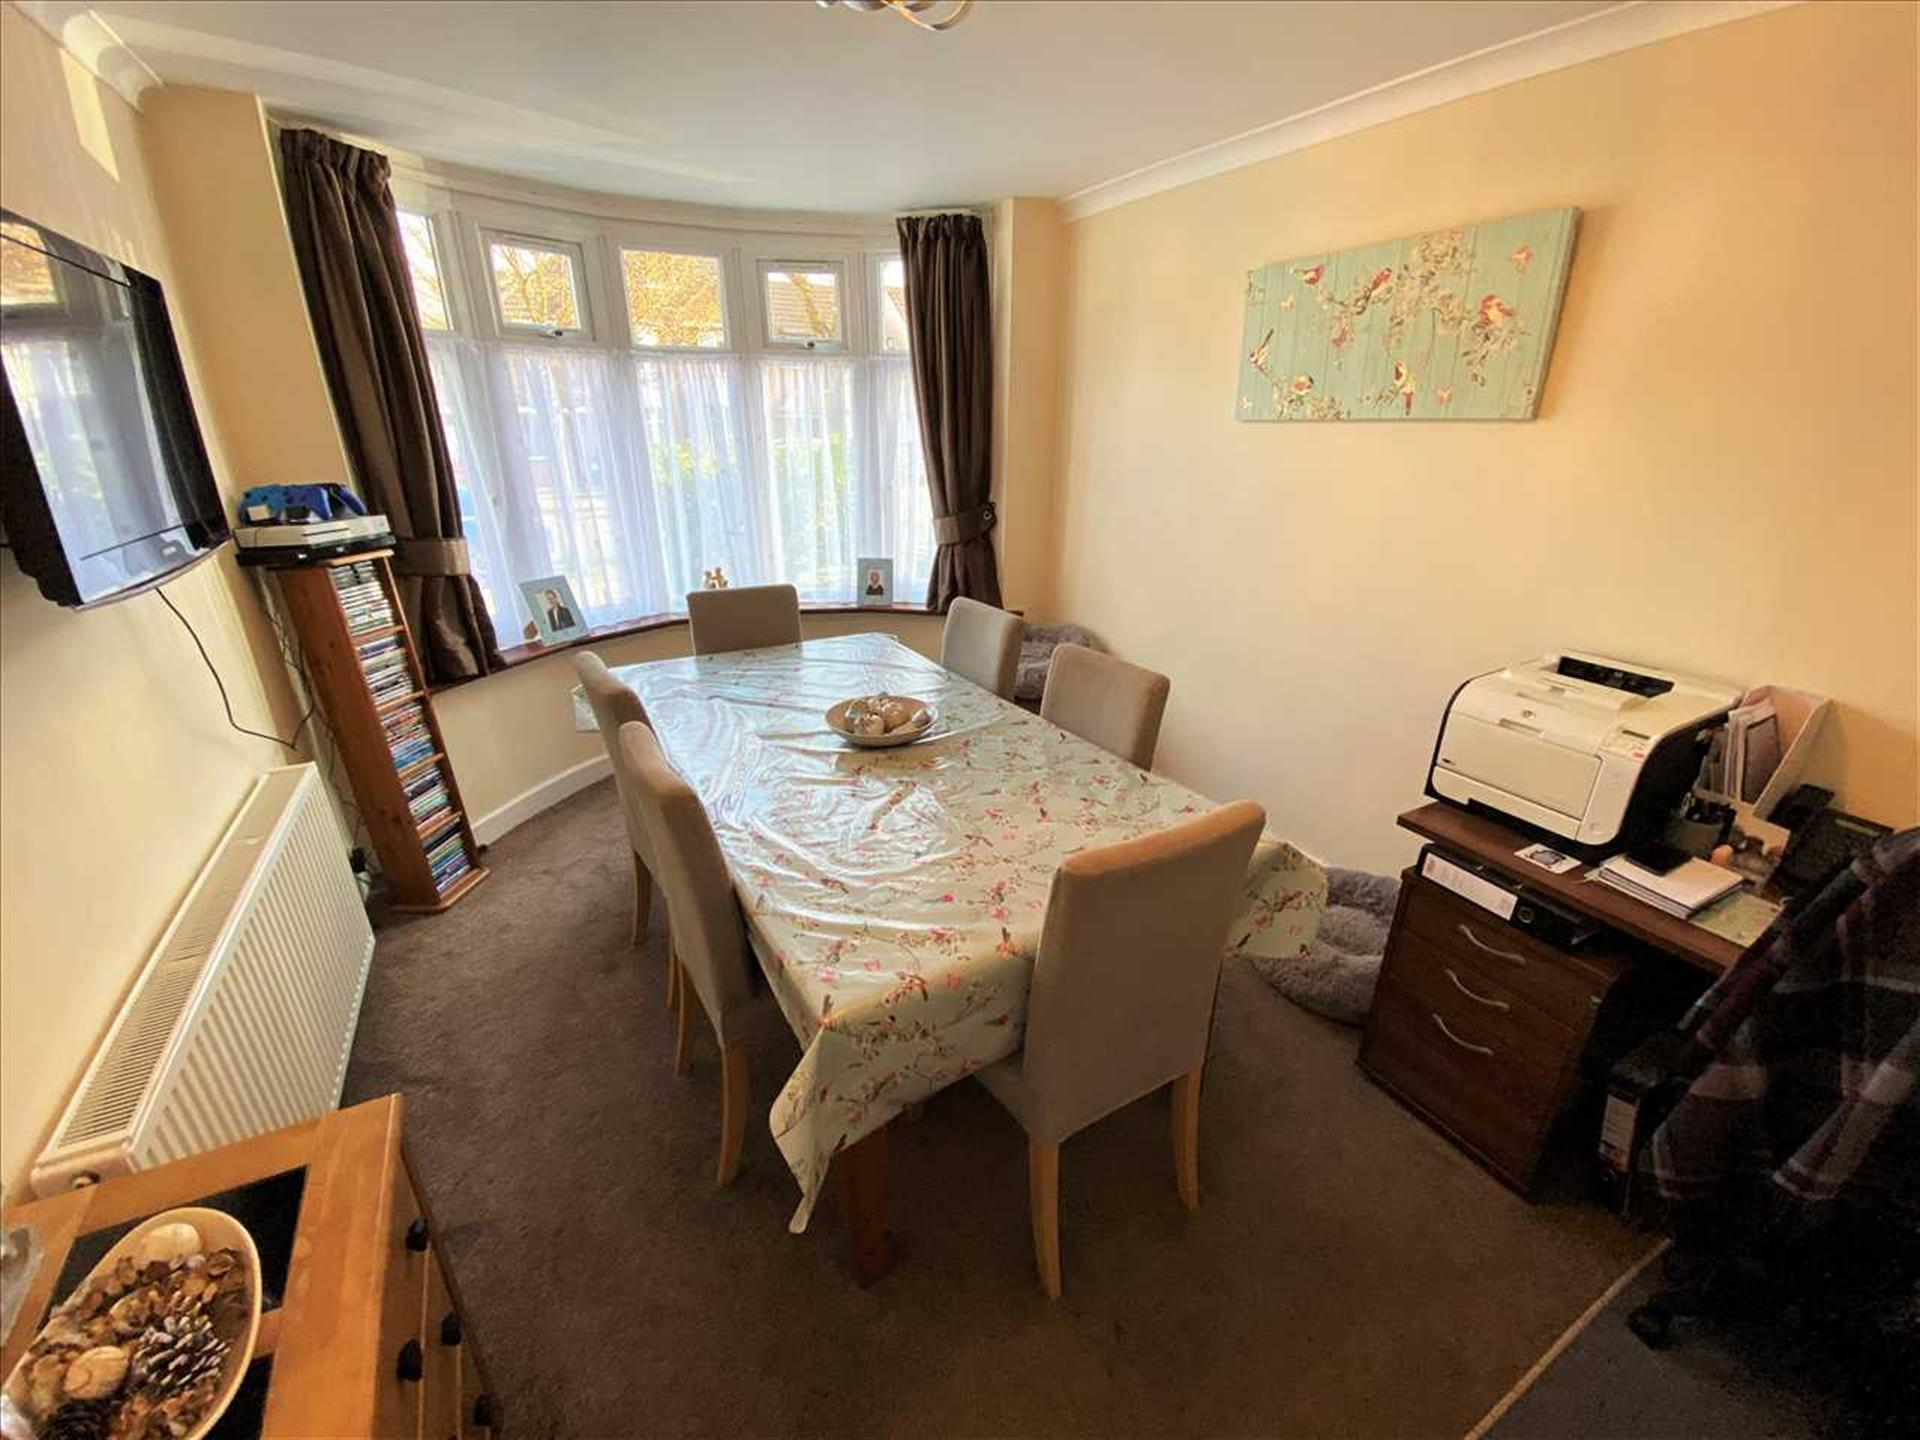 3 Bedroom Semi-detached House For Sale - Dining Room